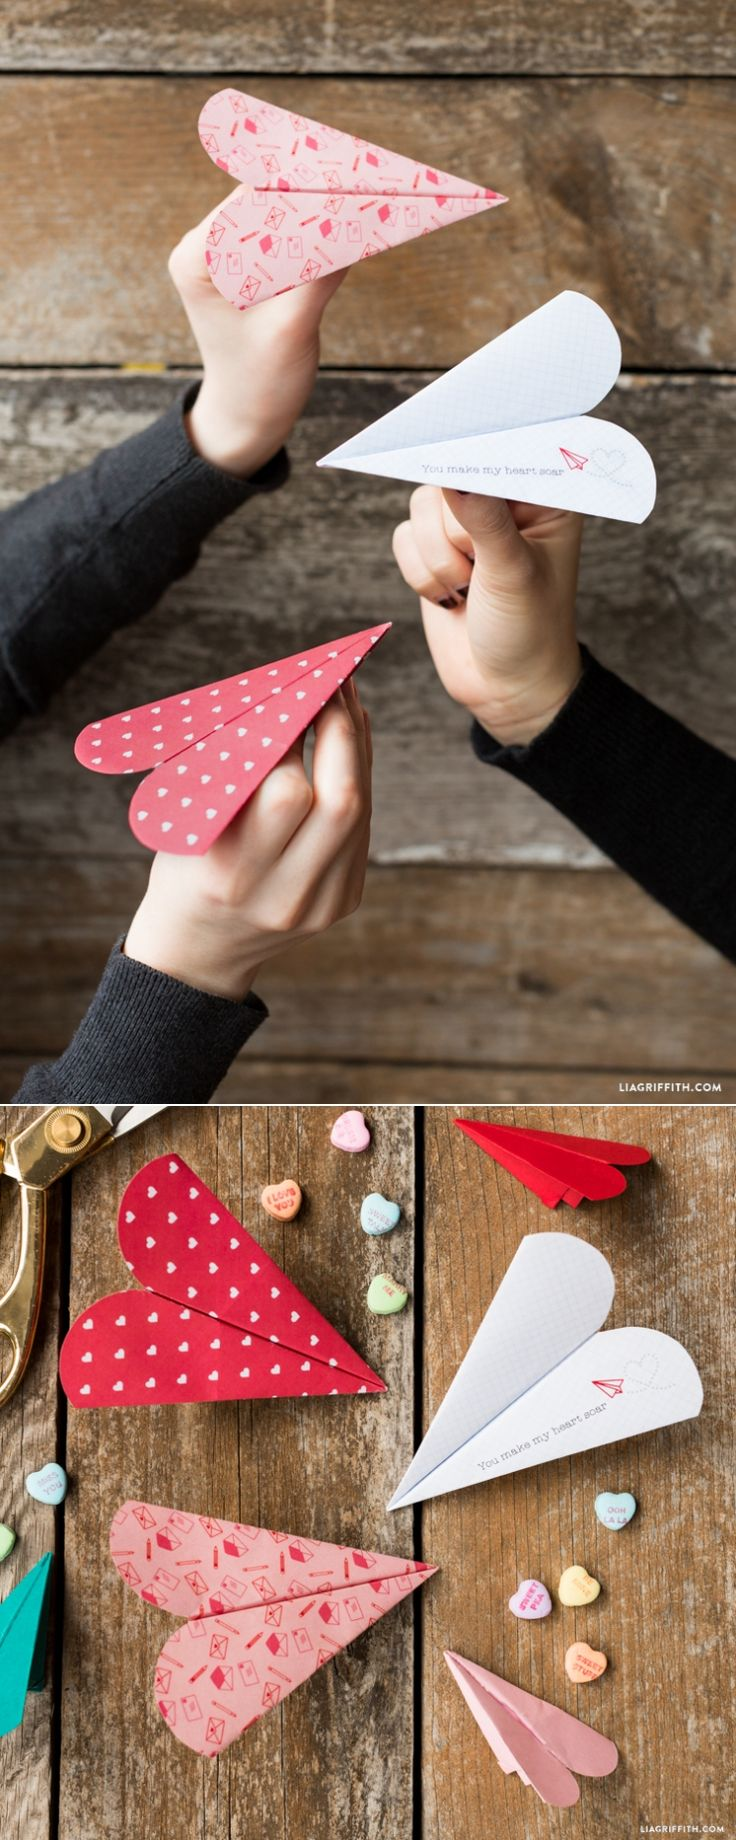 DIY: heart paper airplane